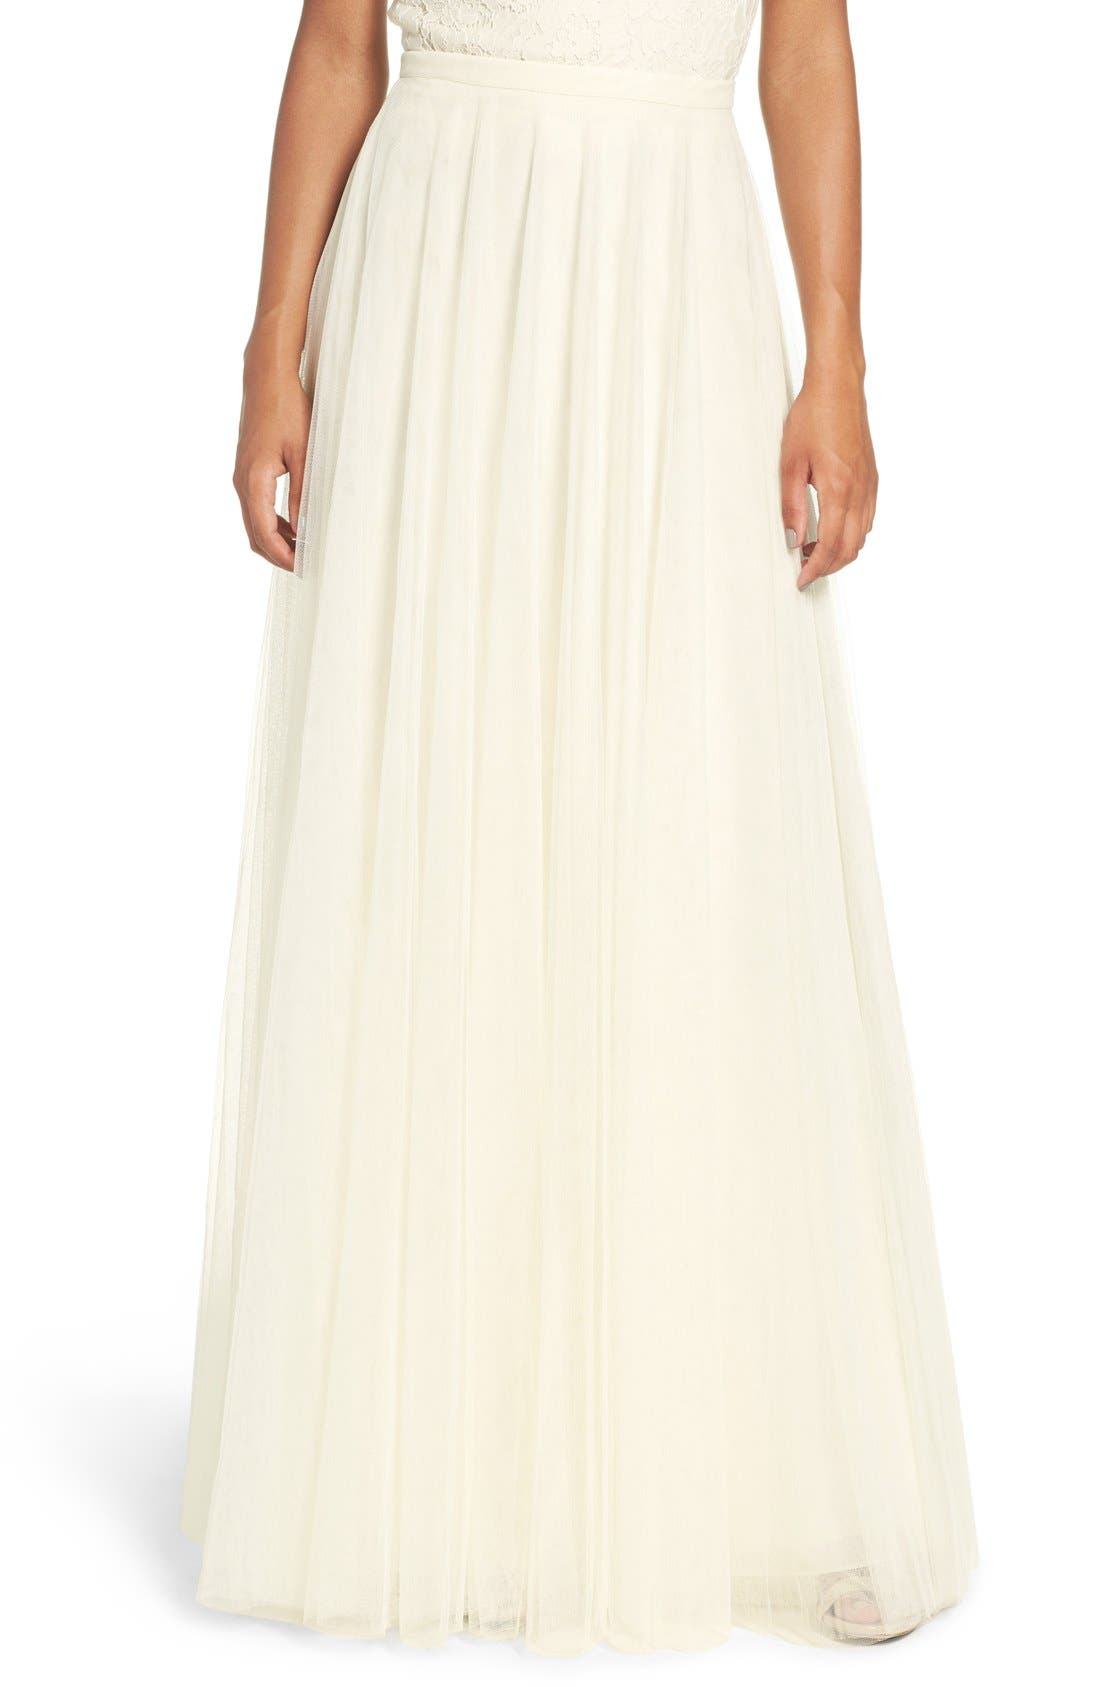 Winslow Long Tulle A-Line Skirt,                         Main,                         color, 104